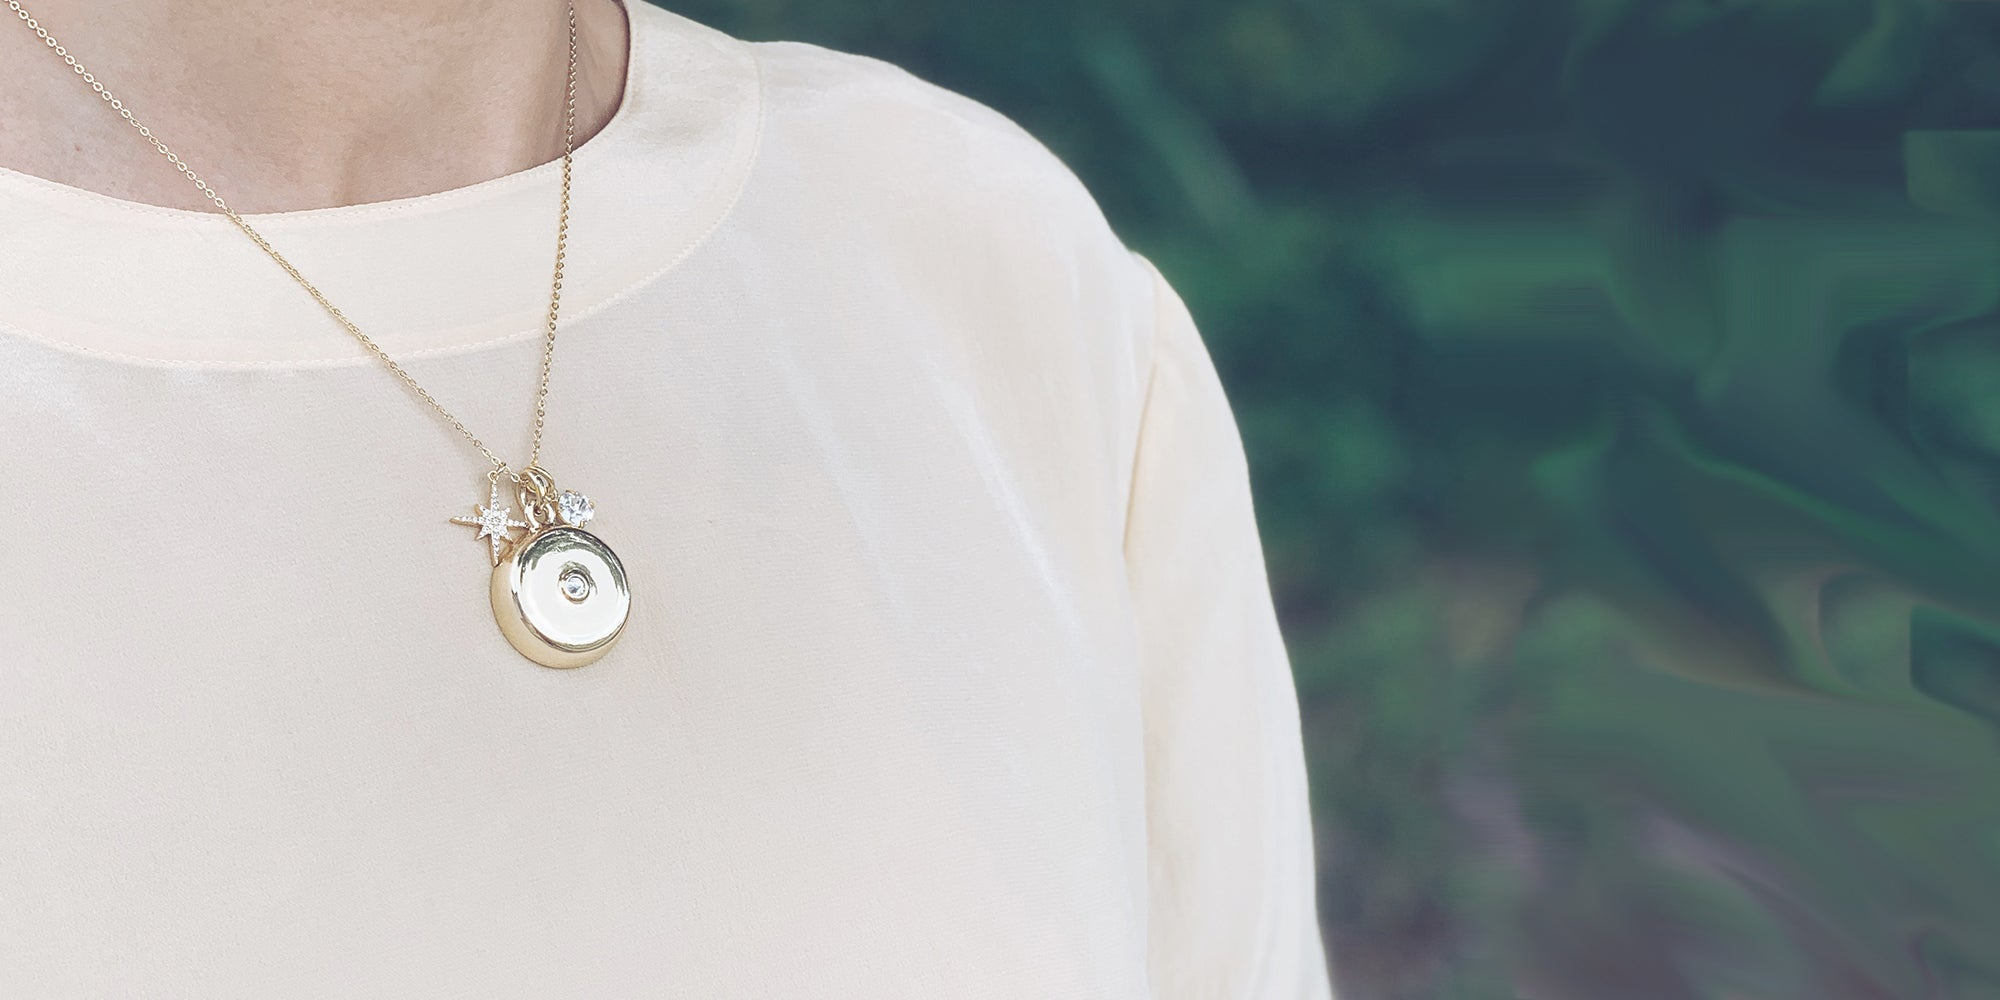 A necklace that alerts loved ones if you're in trouble.